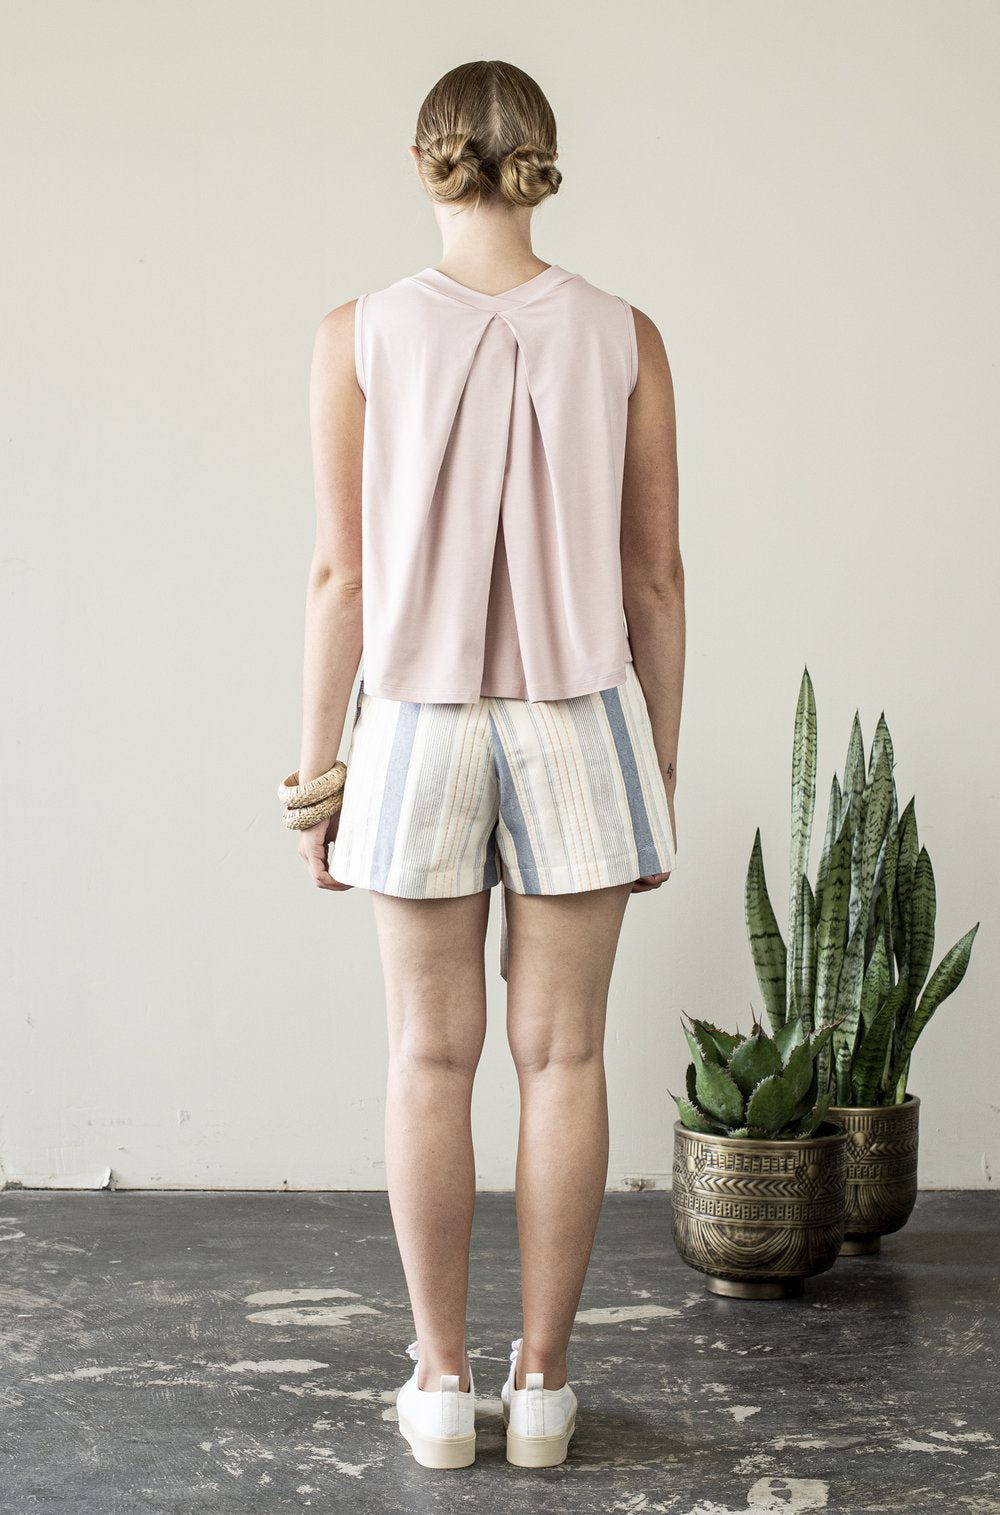 Bodybag by Jude // Tofino Shorts